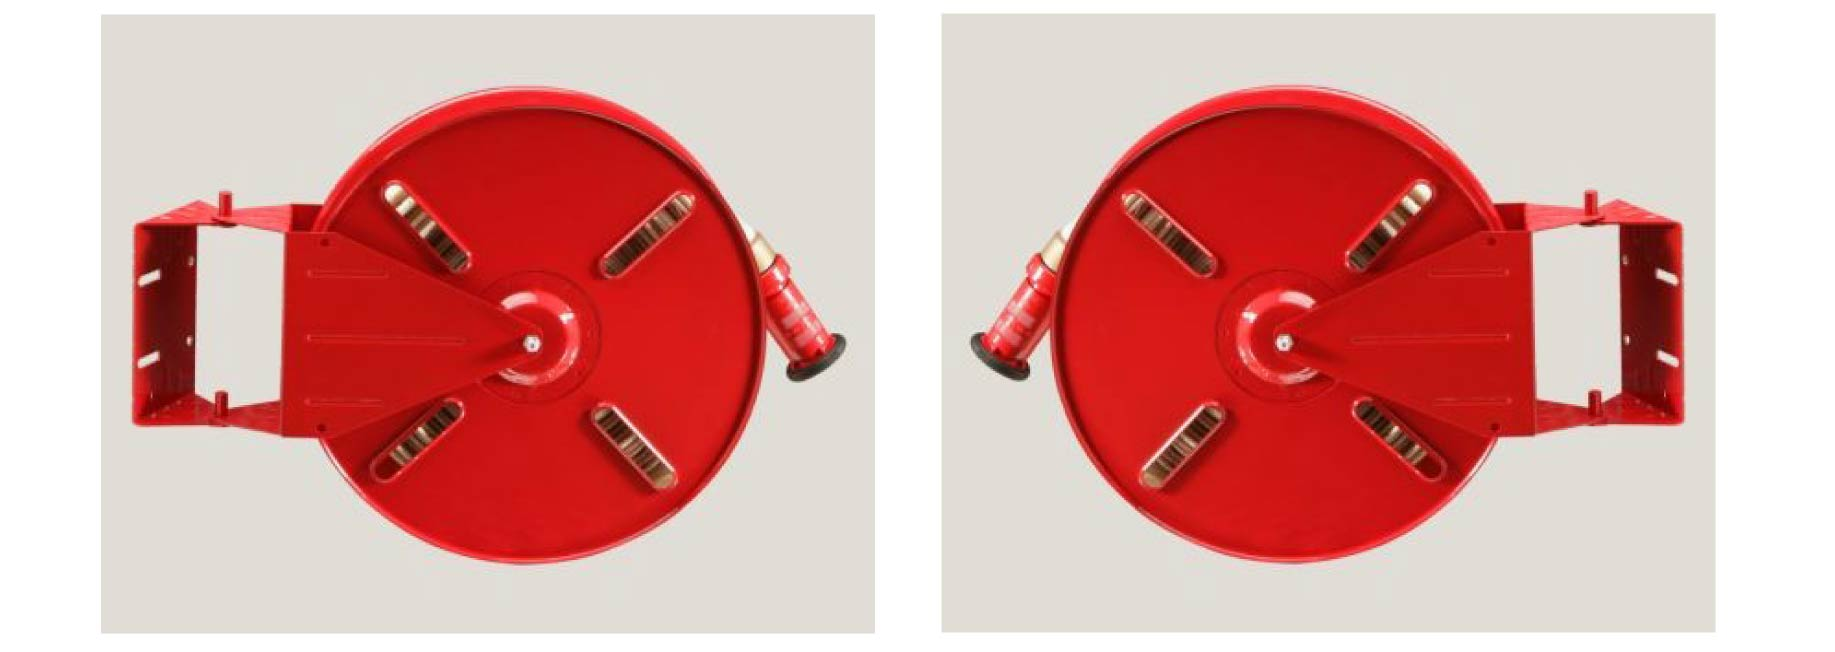 Fire Hose With Reel And Nozzle